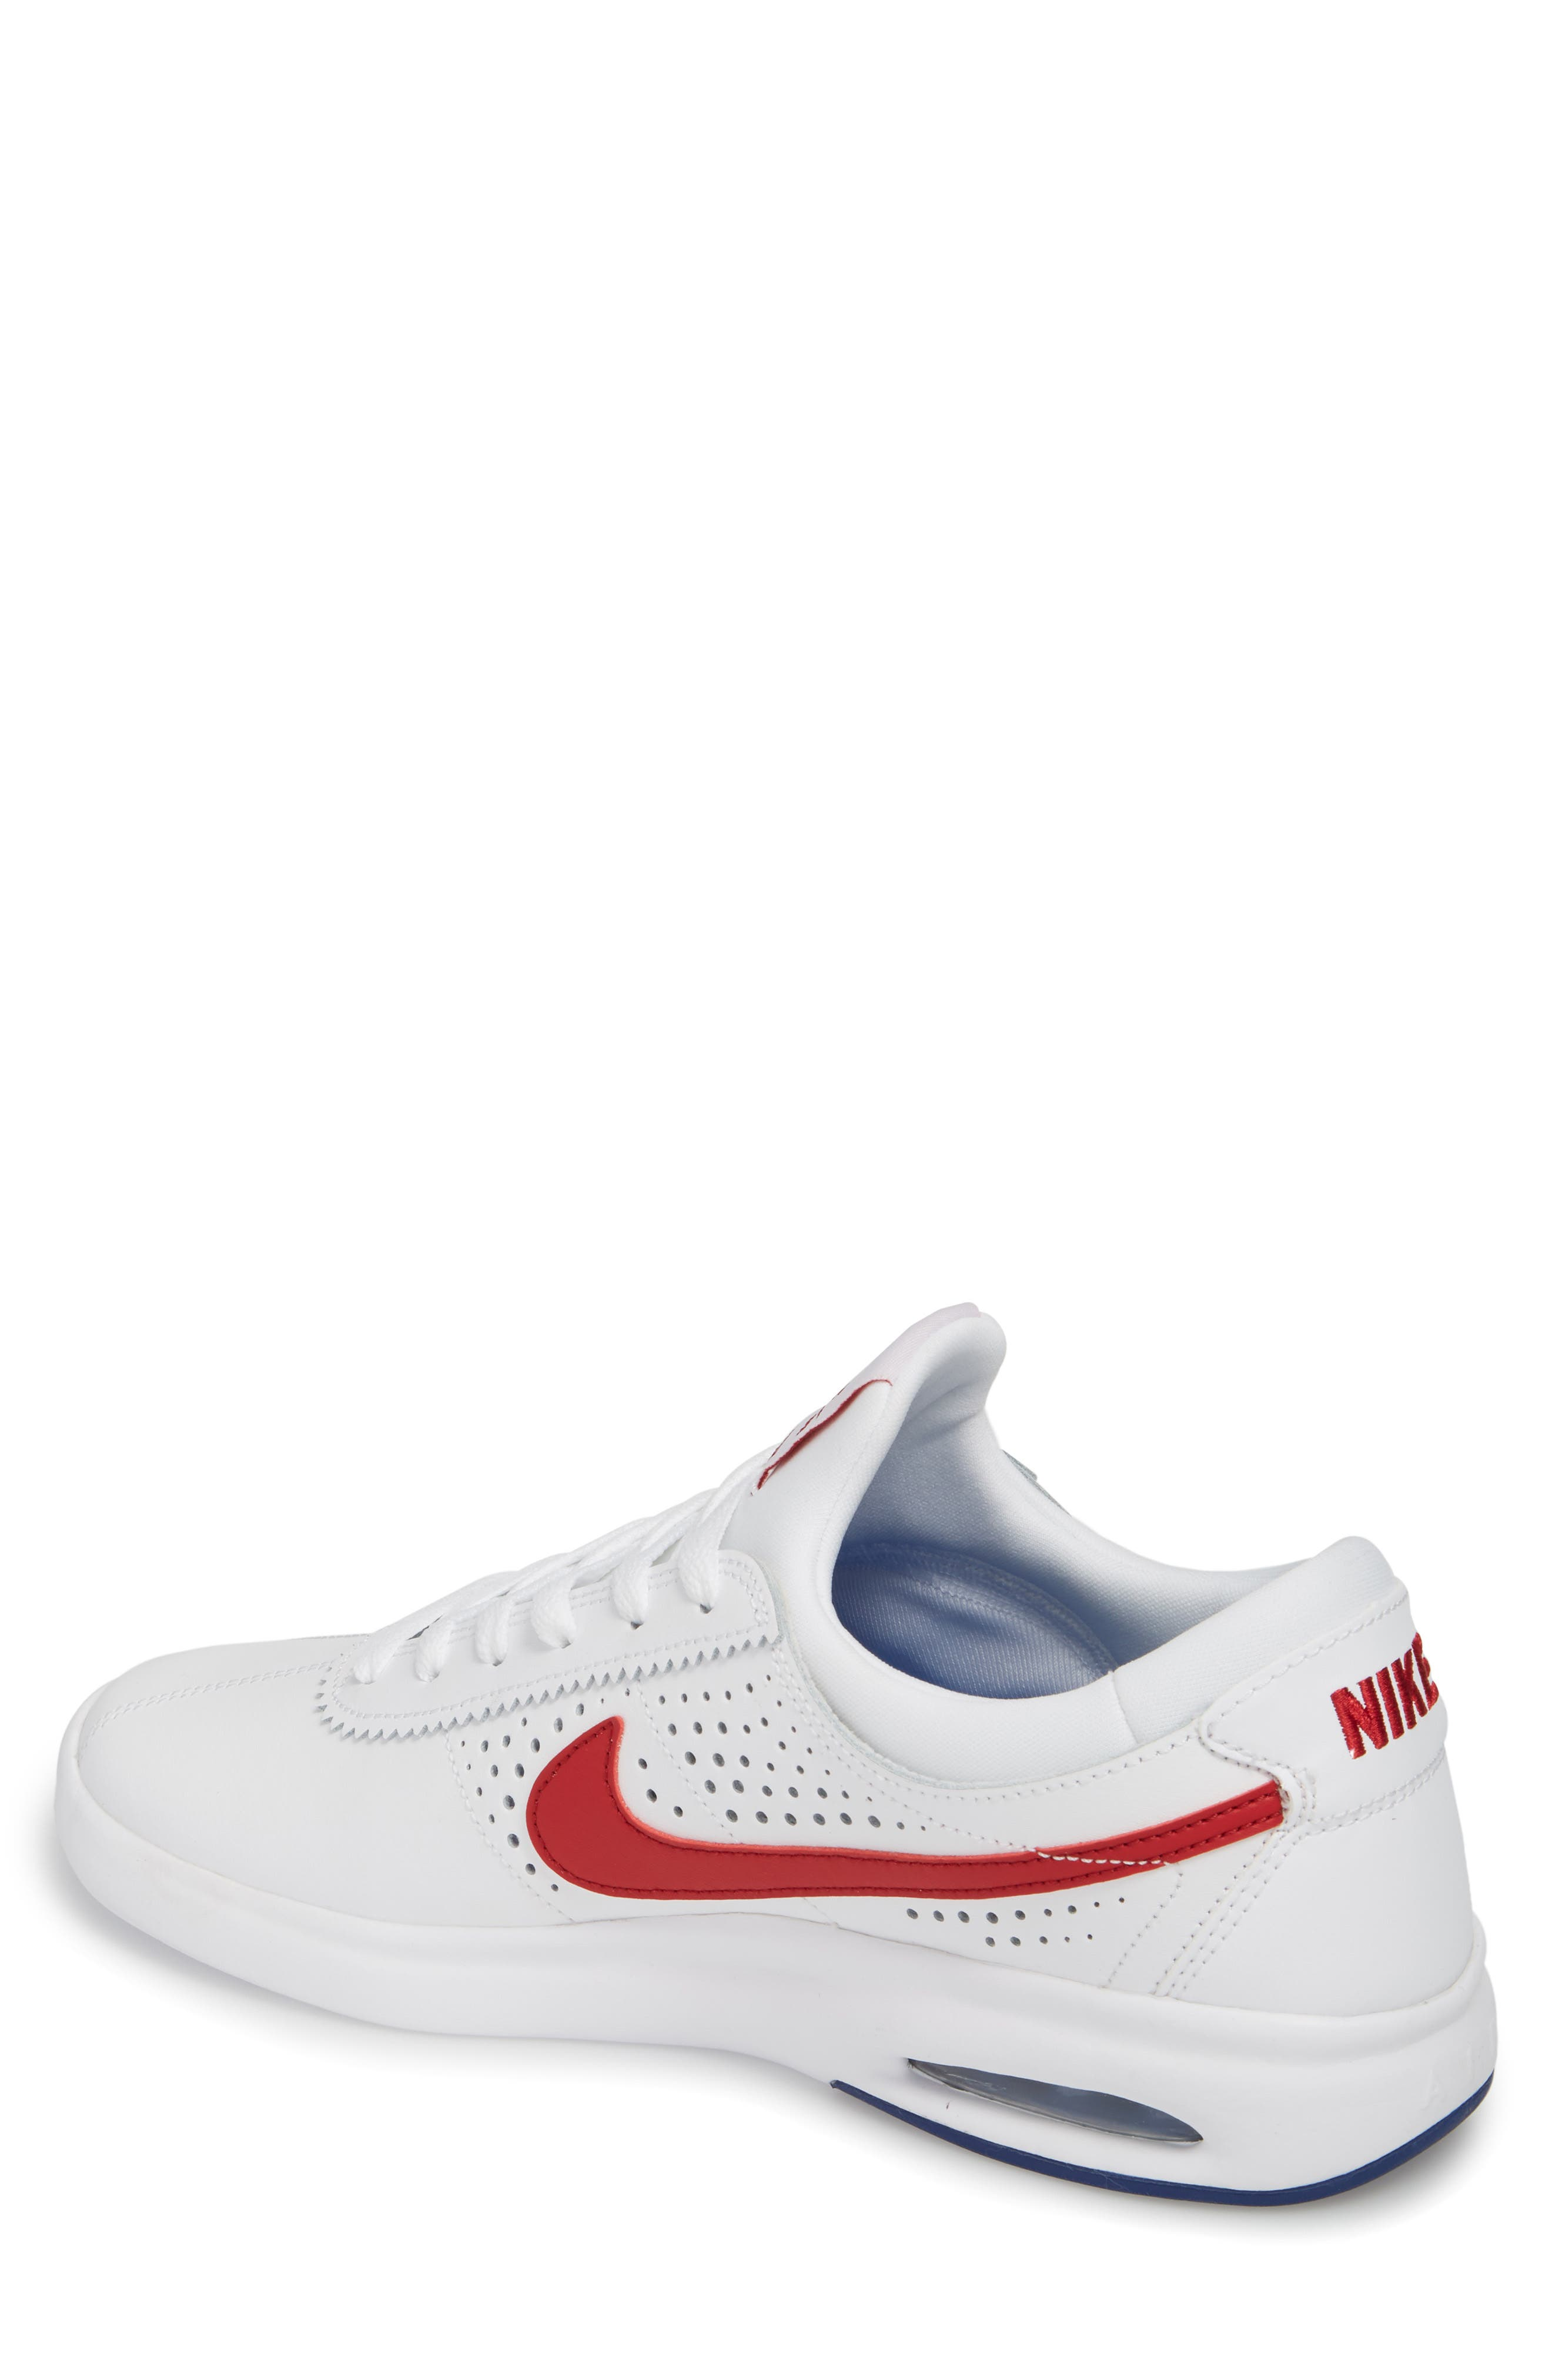 SB Air Max Bruin Vapor Skateboarding Sneaker,                             Alternate thumbnail 2, color,                             100